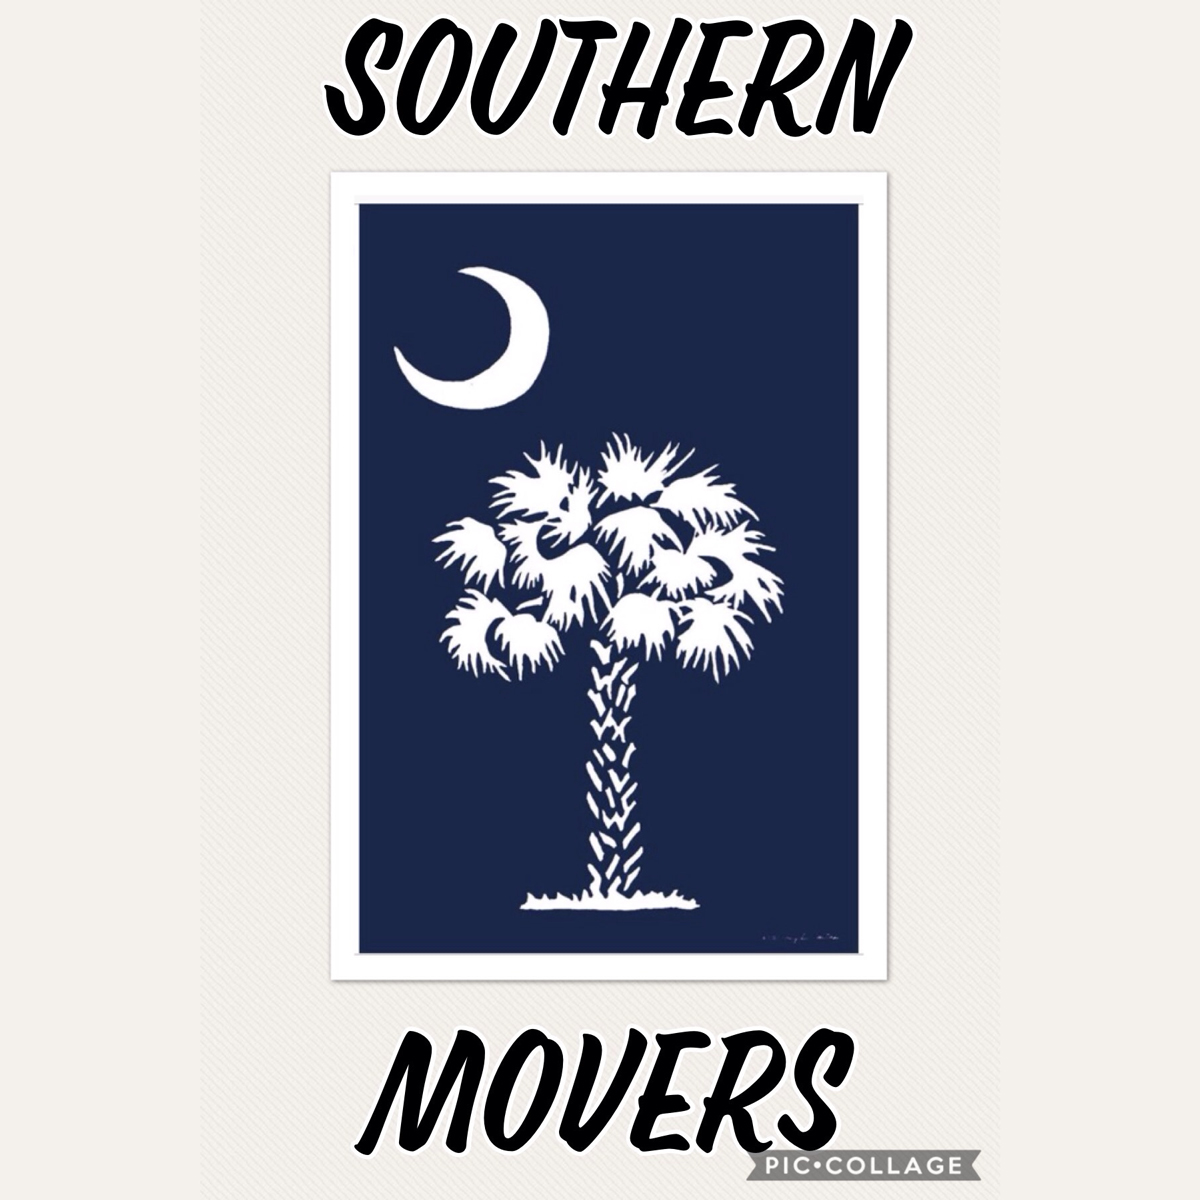 Southern movers